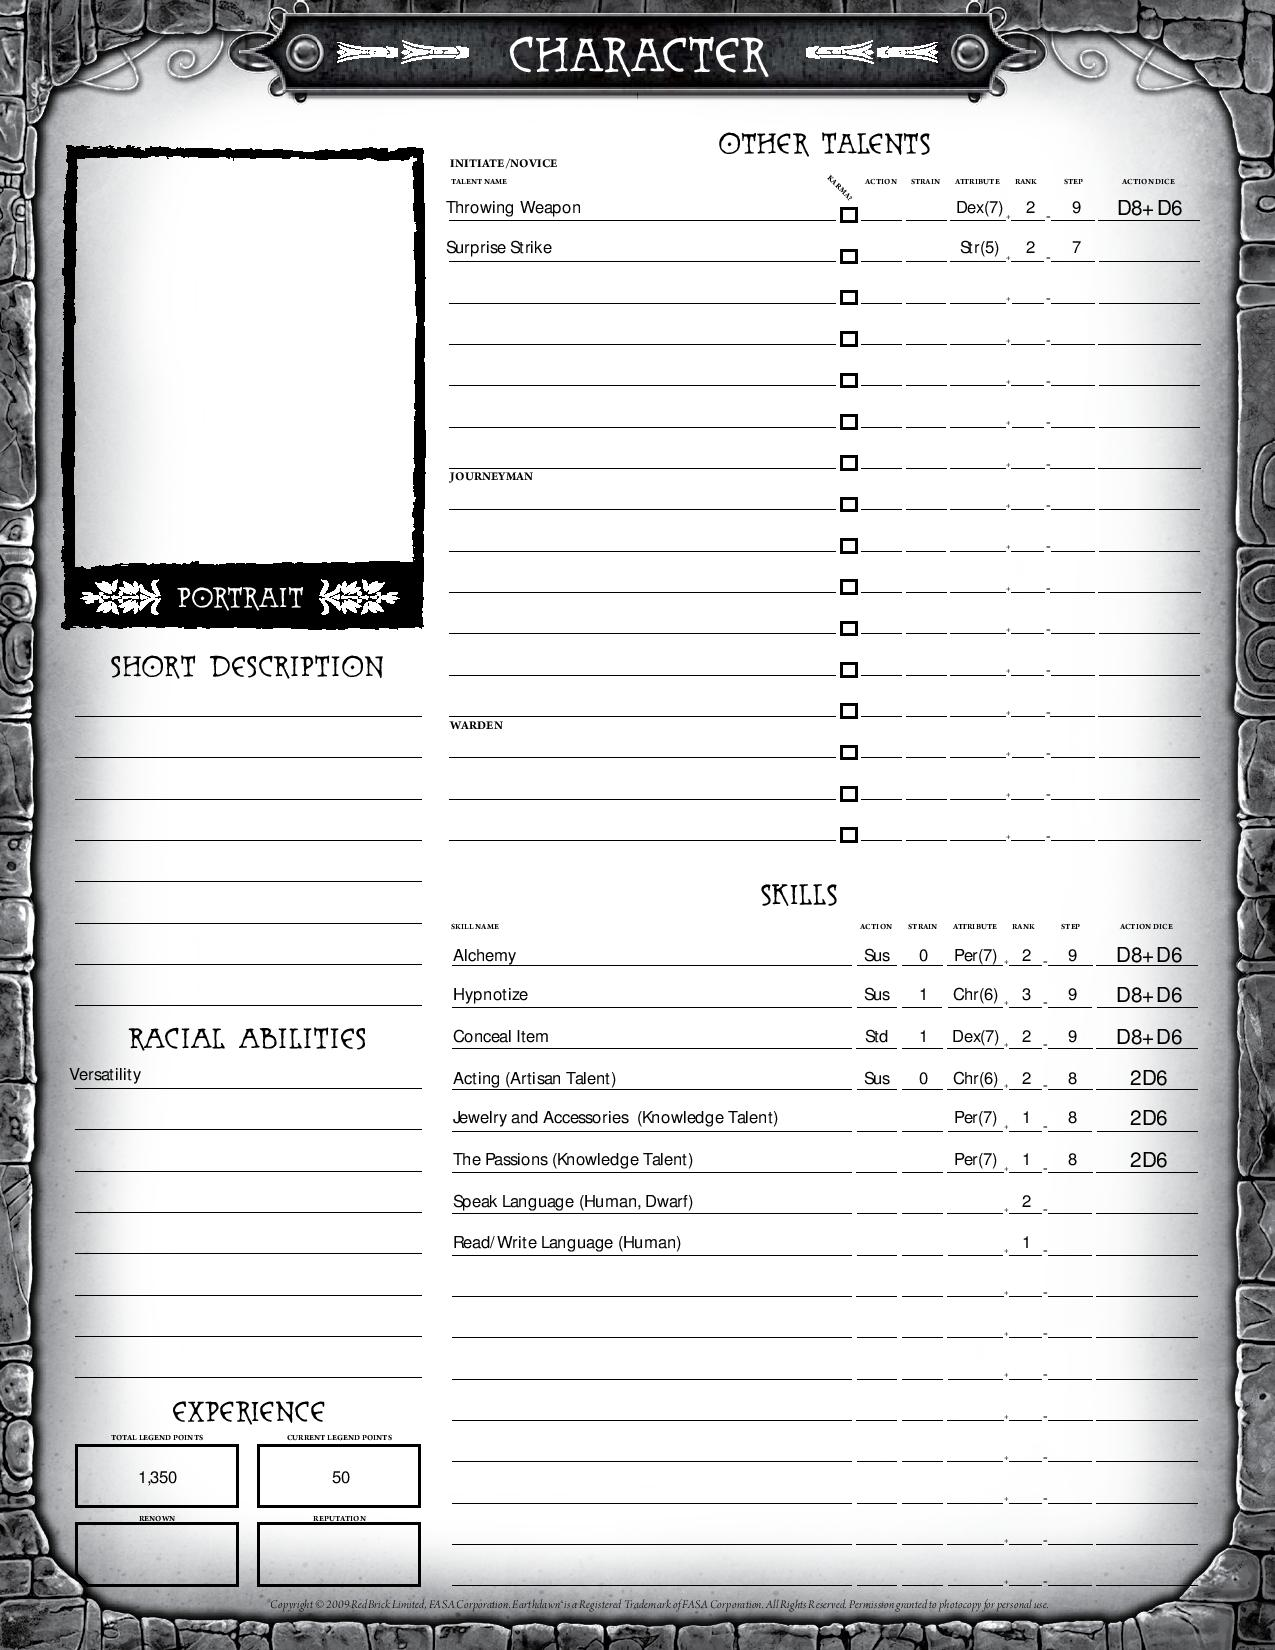 Earthdawn_Thief-page-002.jpg